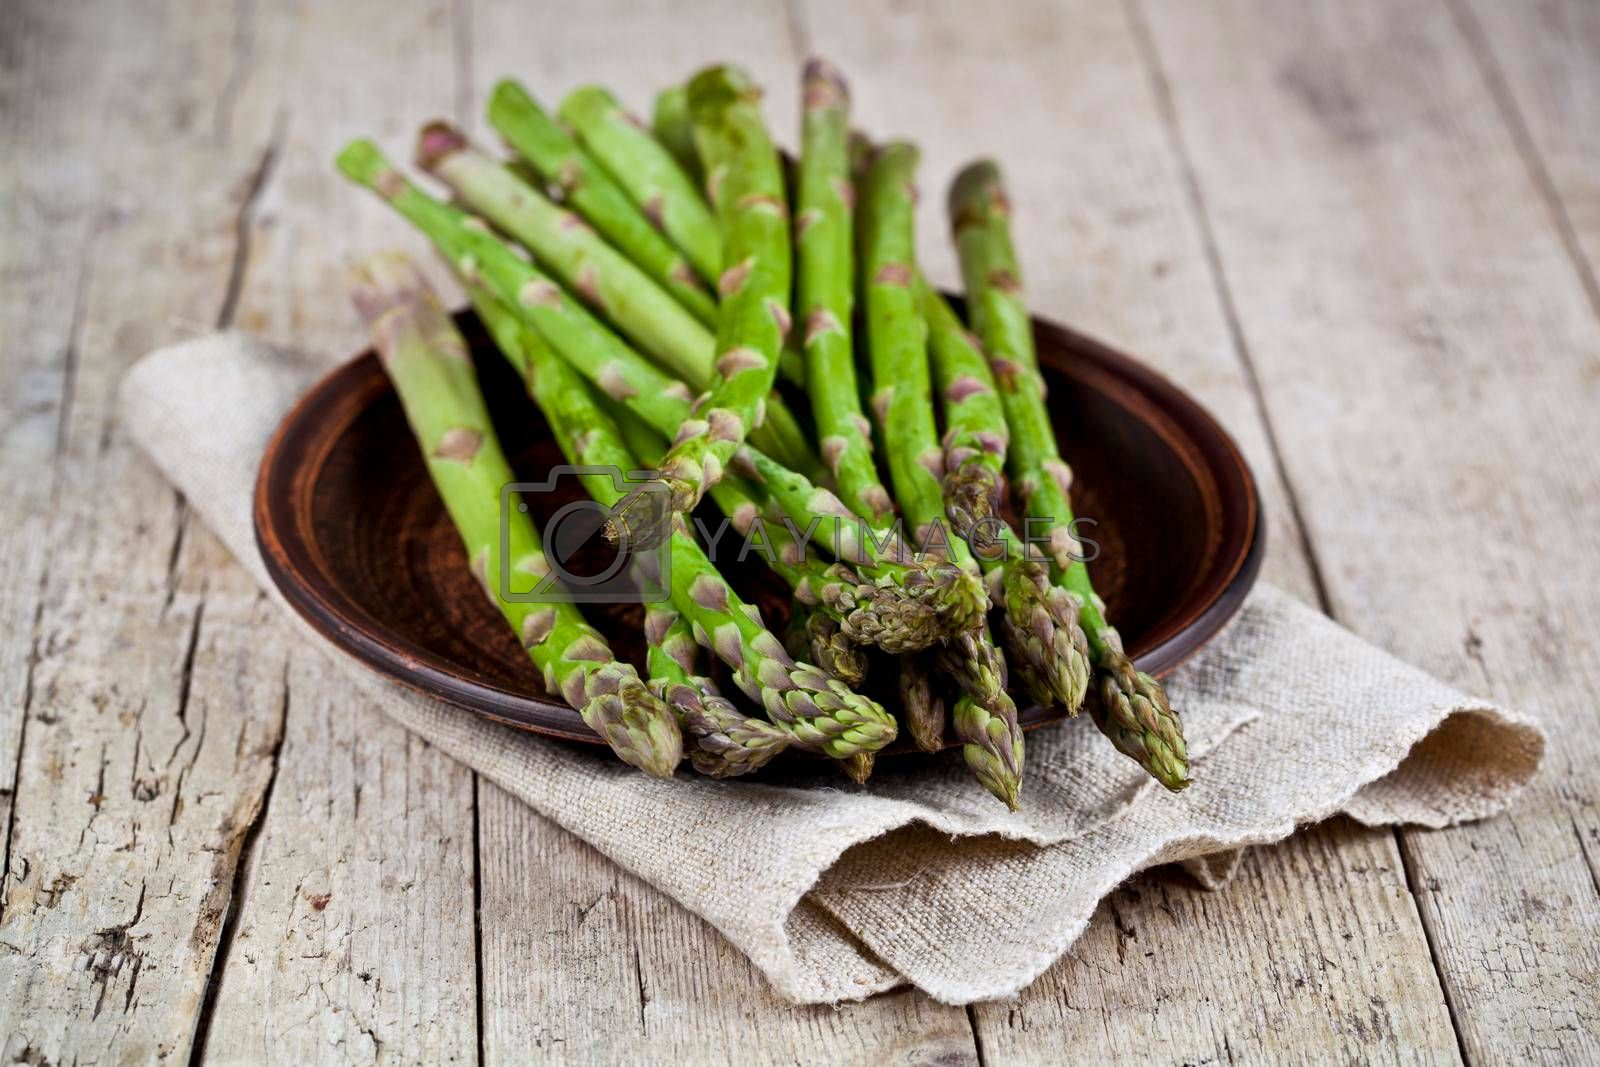 Fresh raw garden asparagus closeup on brown ceramic plate and linen napkin on rustic wooden table background. Green spring vegetables. Edible sprouts of asparagus.